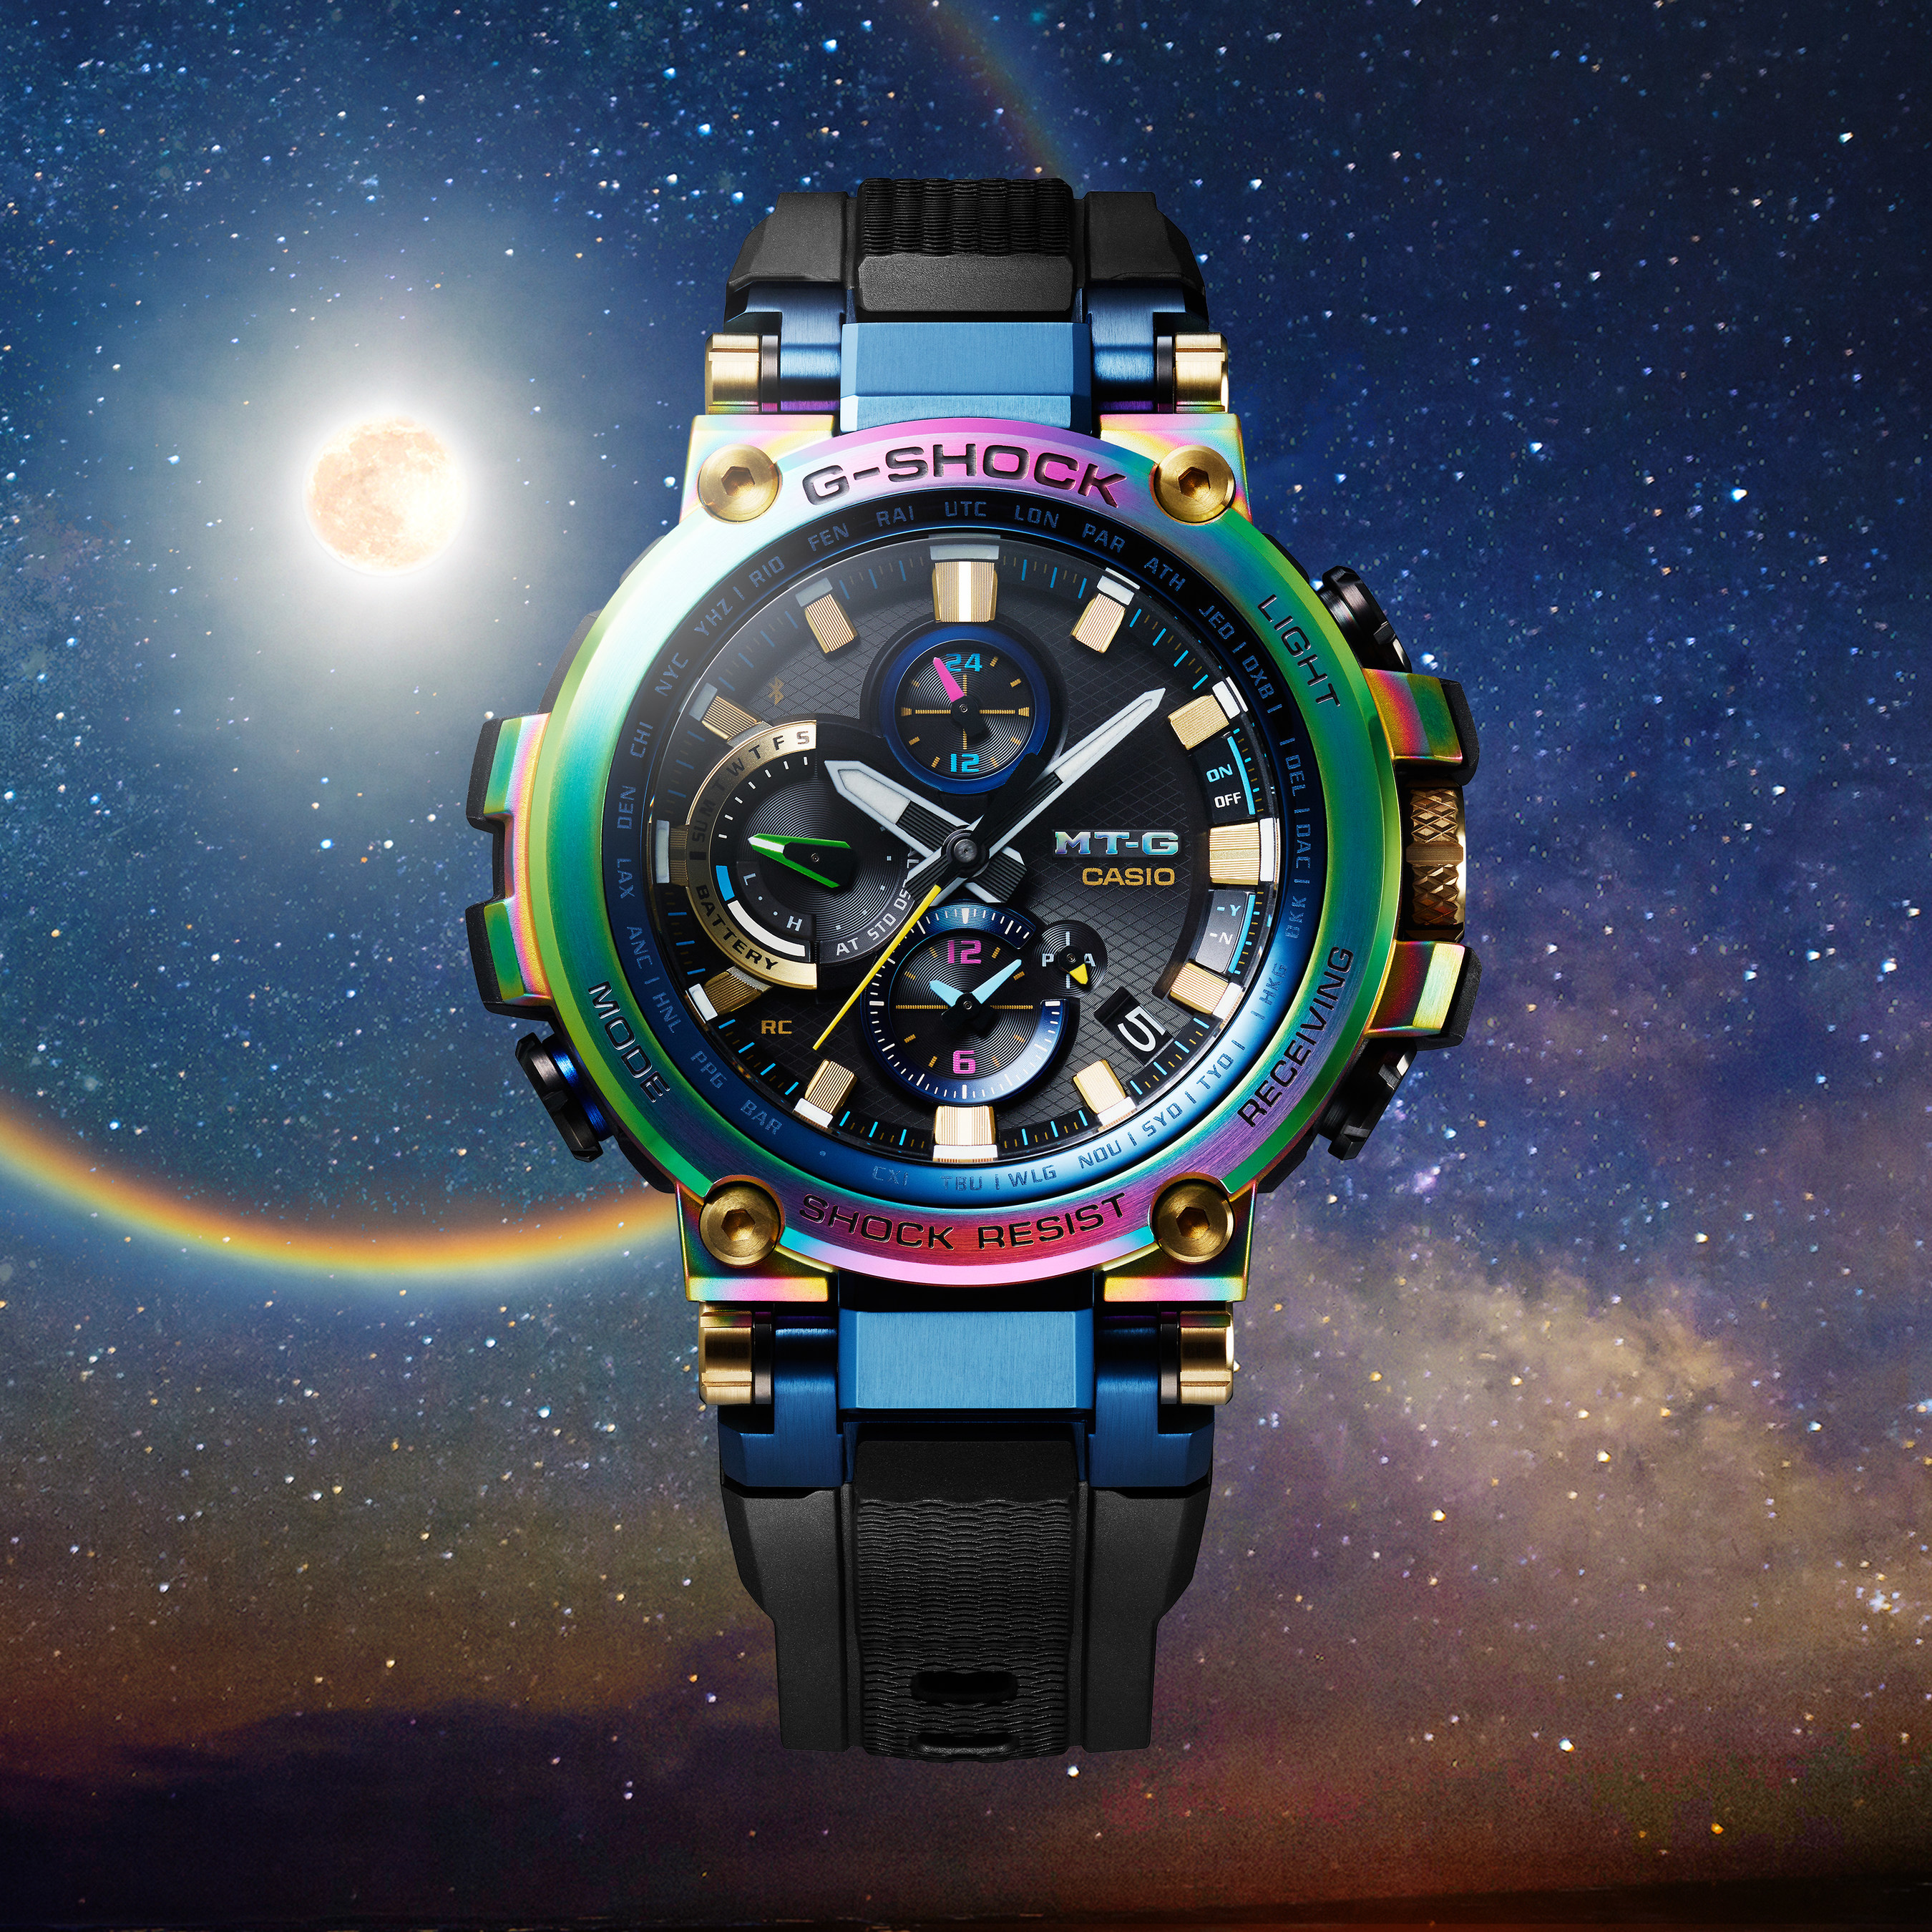 51af9e533e69 Casio G-SHOCK Reveals Limited-Edition MT-G In Rainbow Colorway At  Baselworld 2019